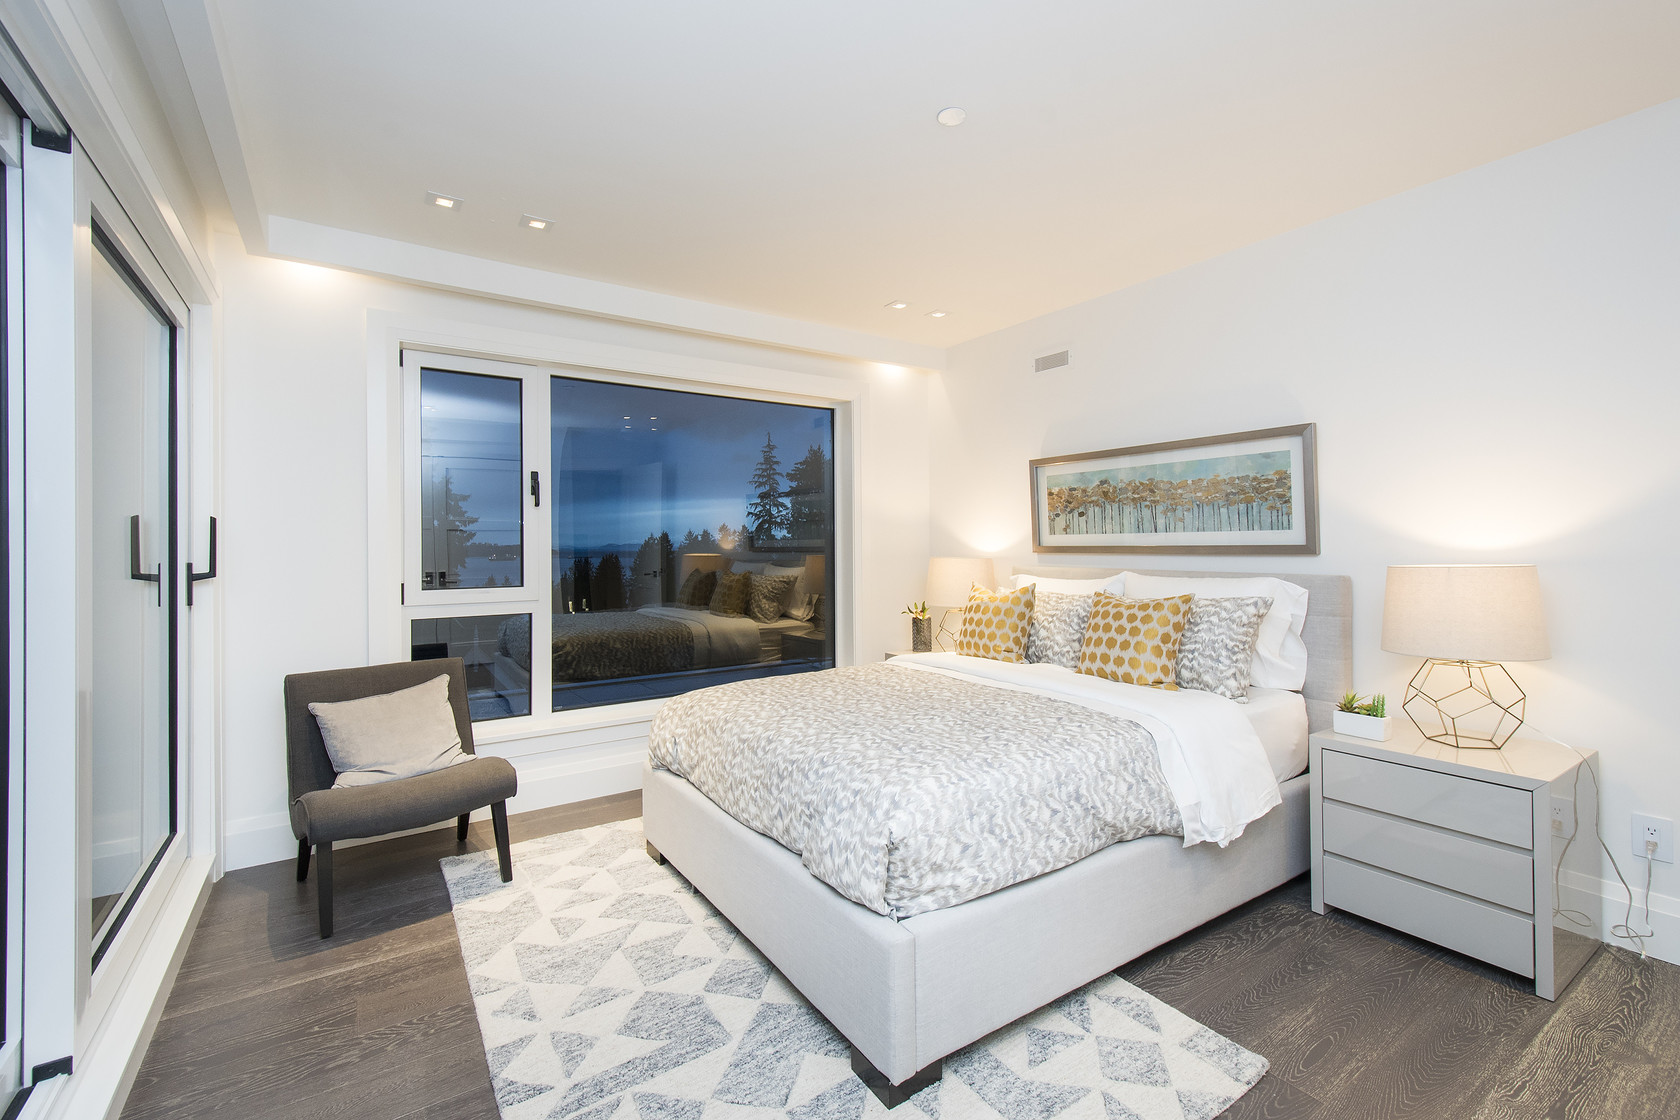 034 at 1677 29th Street, Altamont, West Vancouver